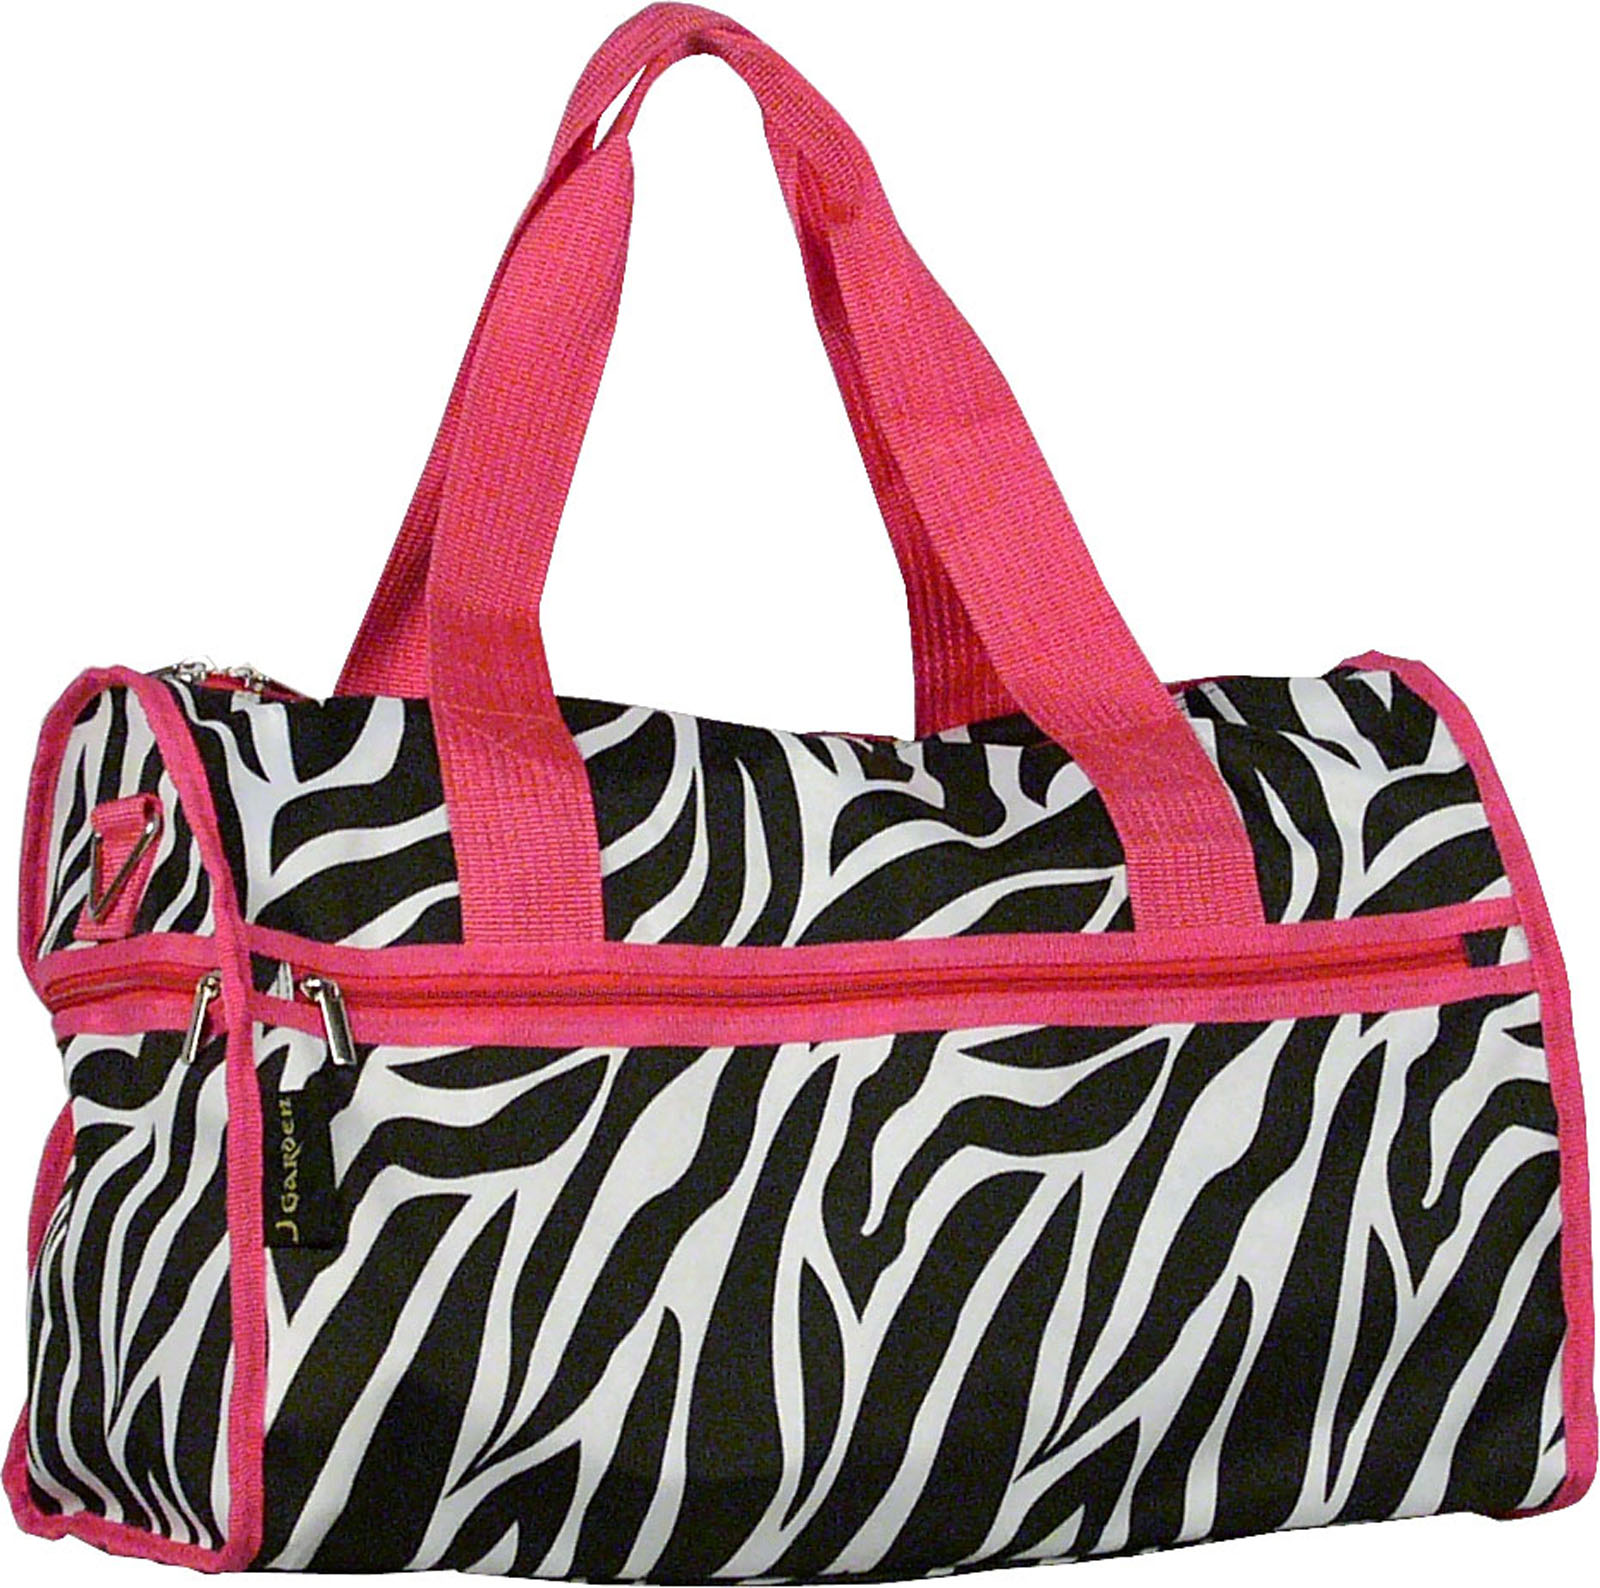 "SilverHooks Zebra Carry On Duffle Bag w/ Hot Pink Trim 19"" Inches at Sears.com"